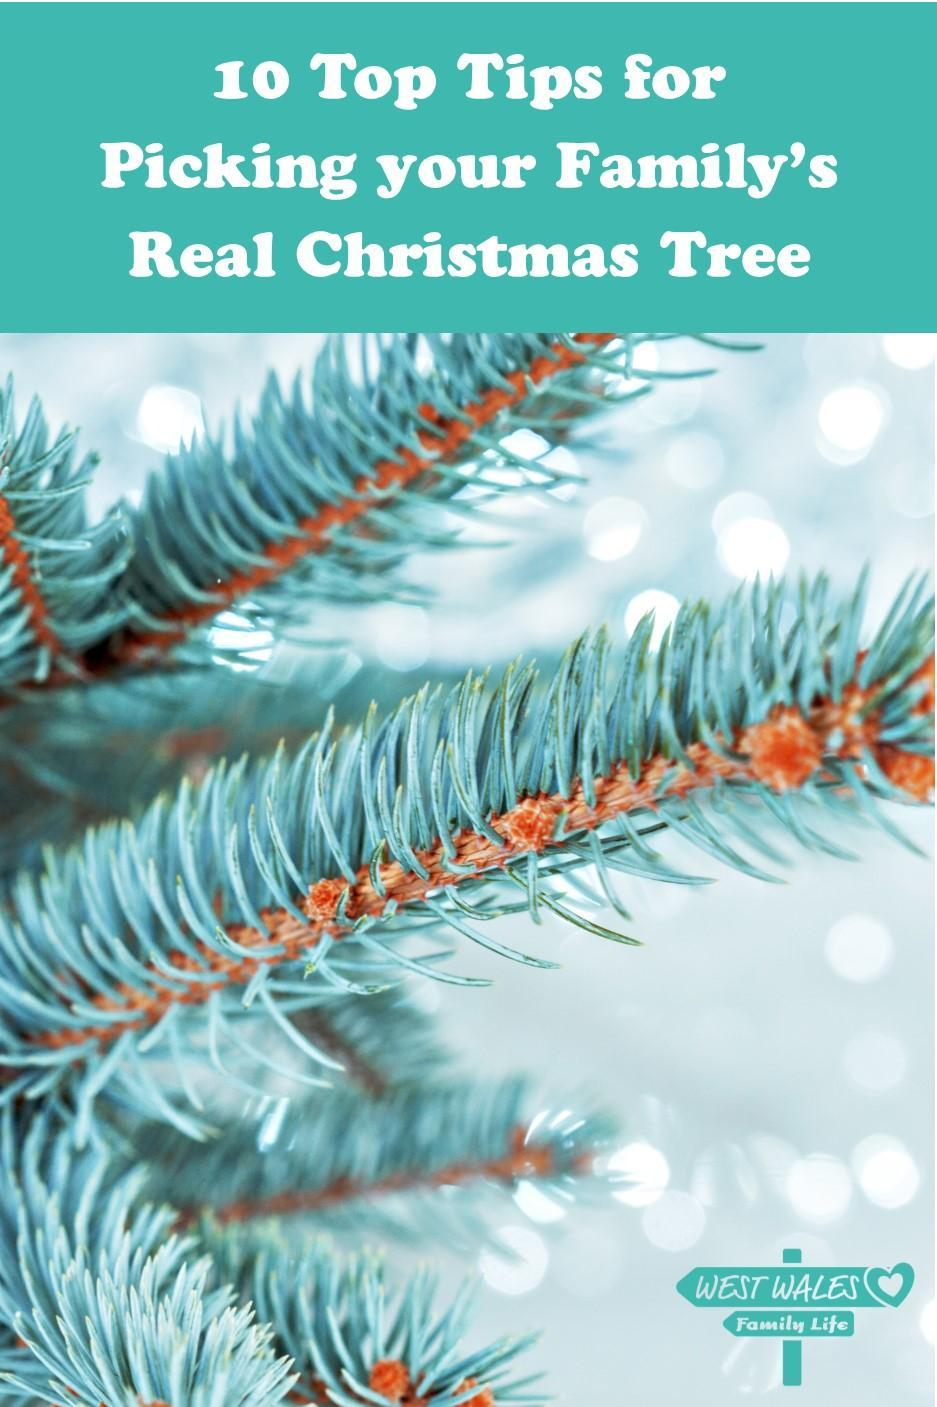 10 Top Tips for Picking your Familys Real Christmas Tree